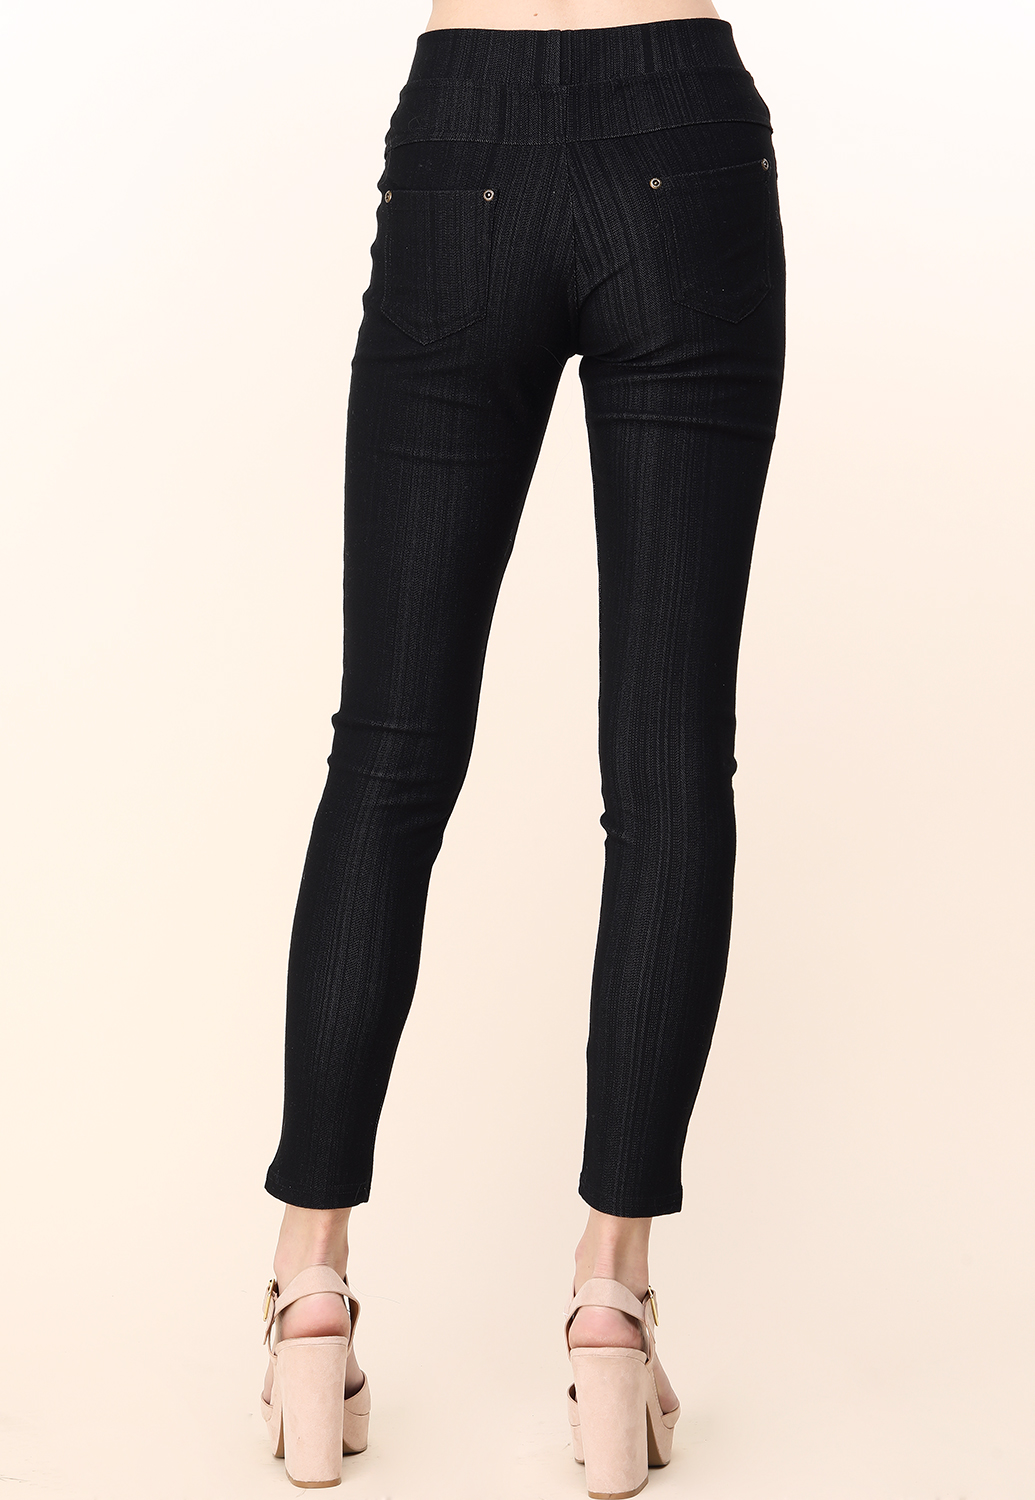 Back Pocket Detail Jeggings